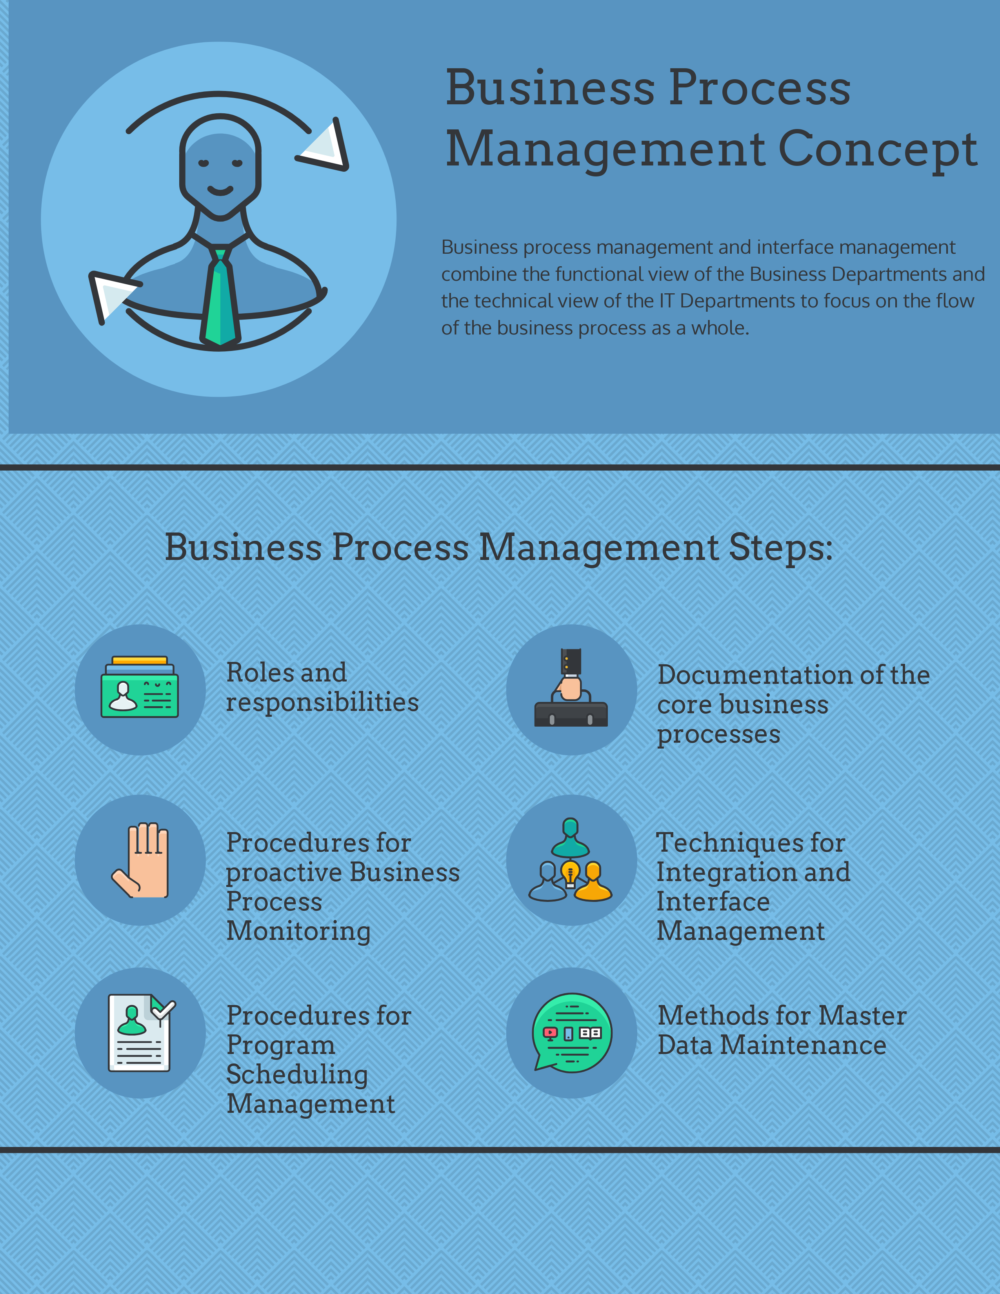 Business Process Management Concept, Steps and Benefits